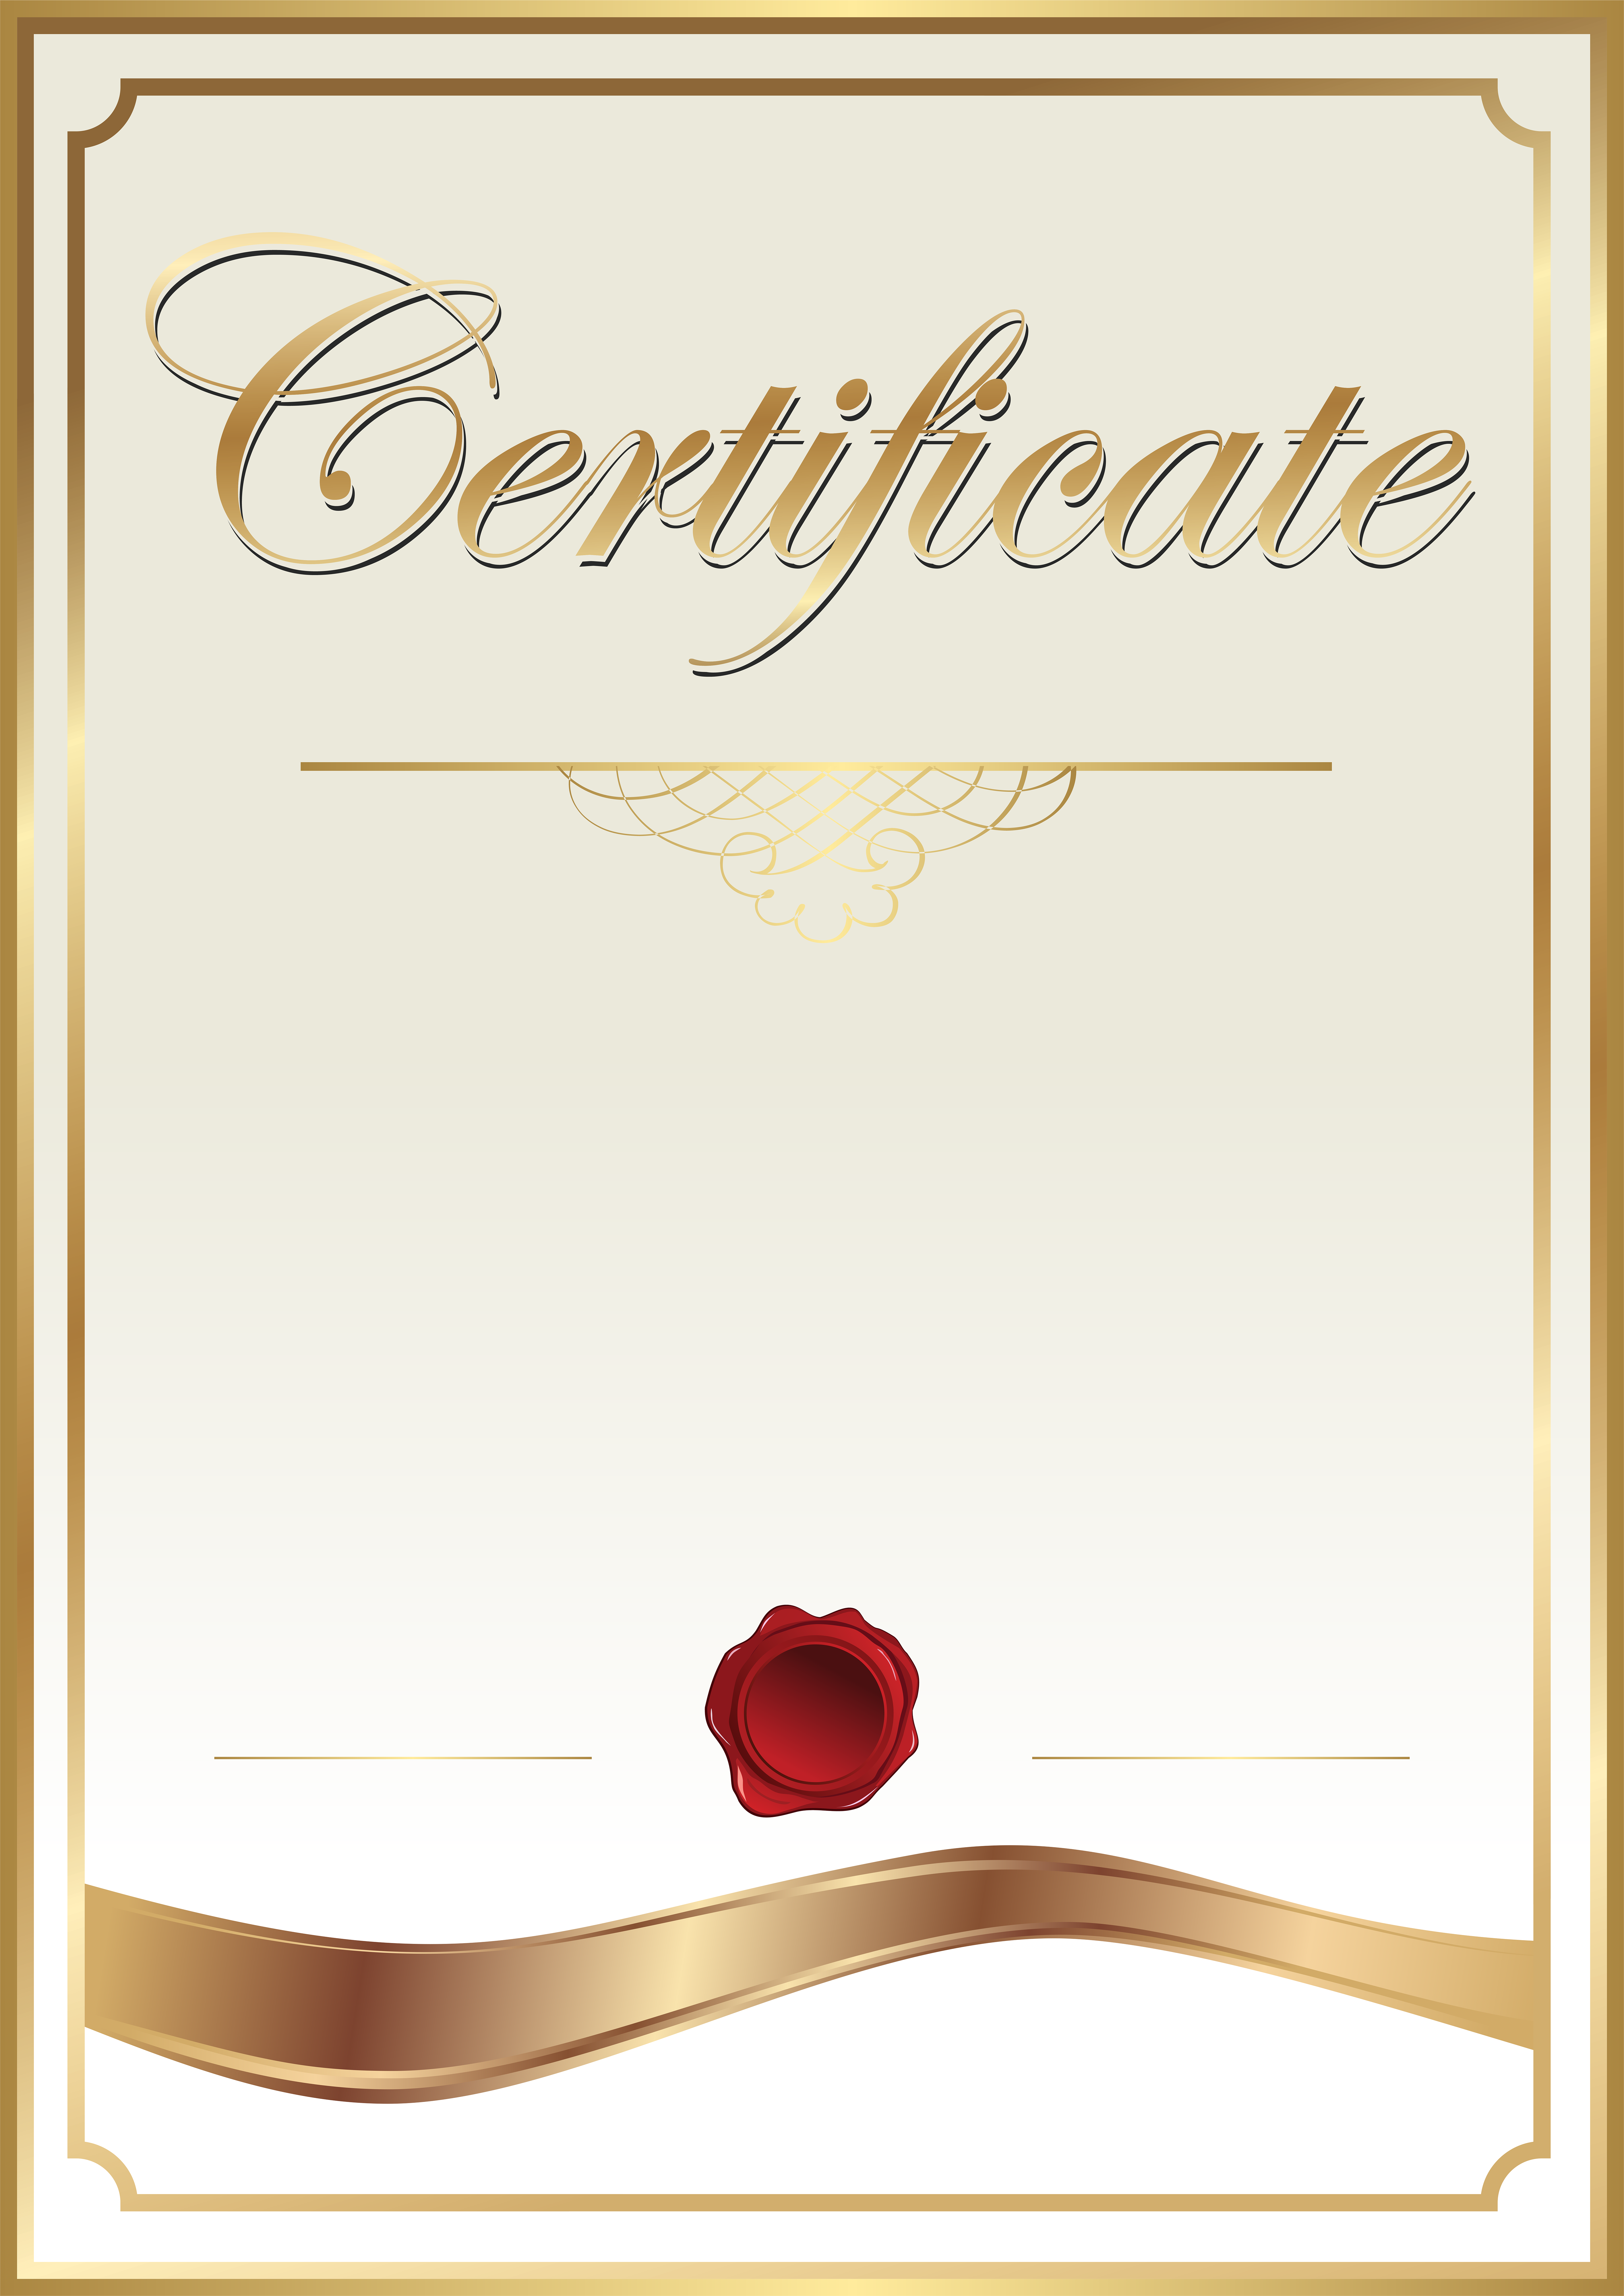 Certficate clipart picture royalty free Certificate Template Clip Art PNG Image | Gallery Yopriceville ... picture royalty free